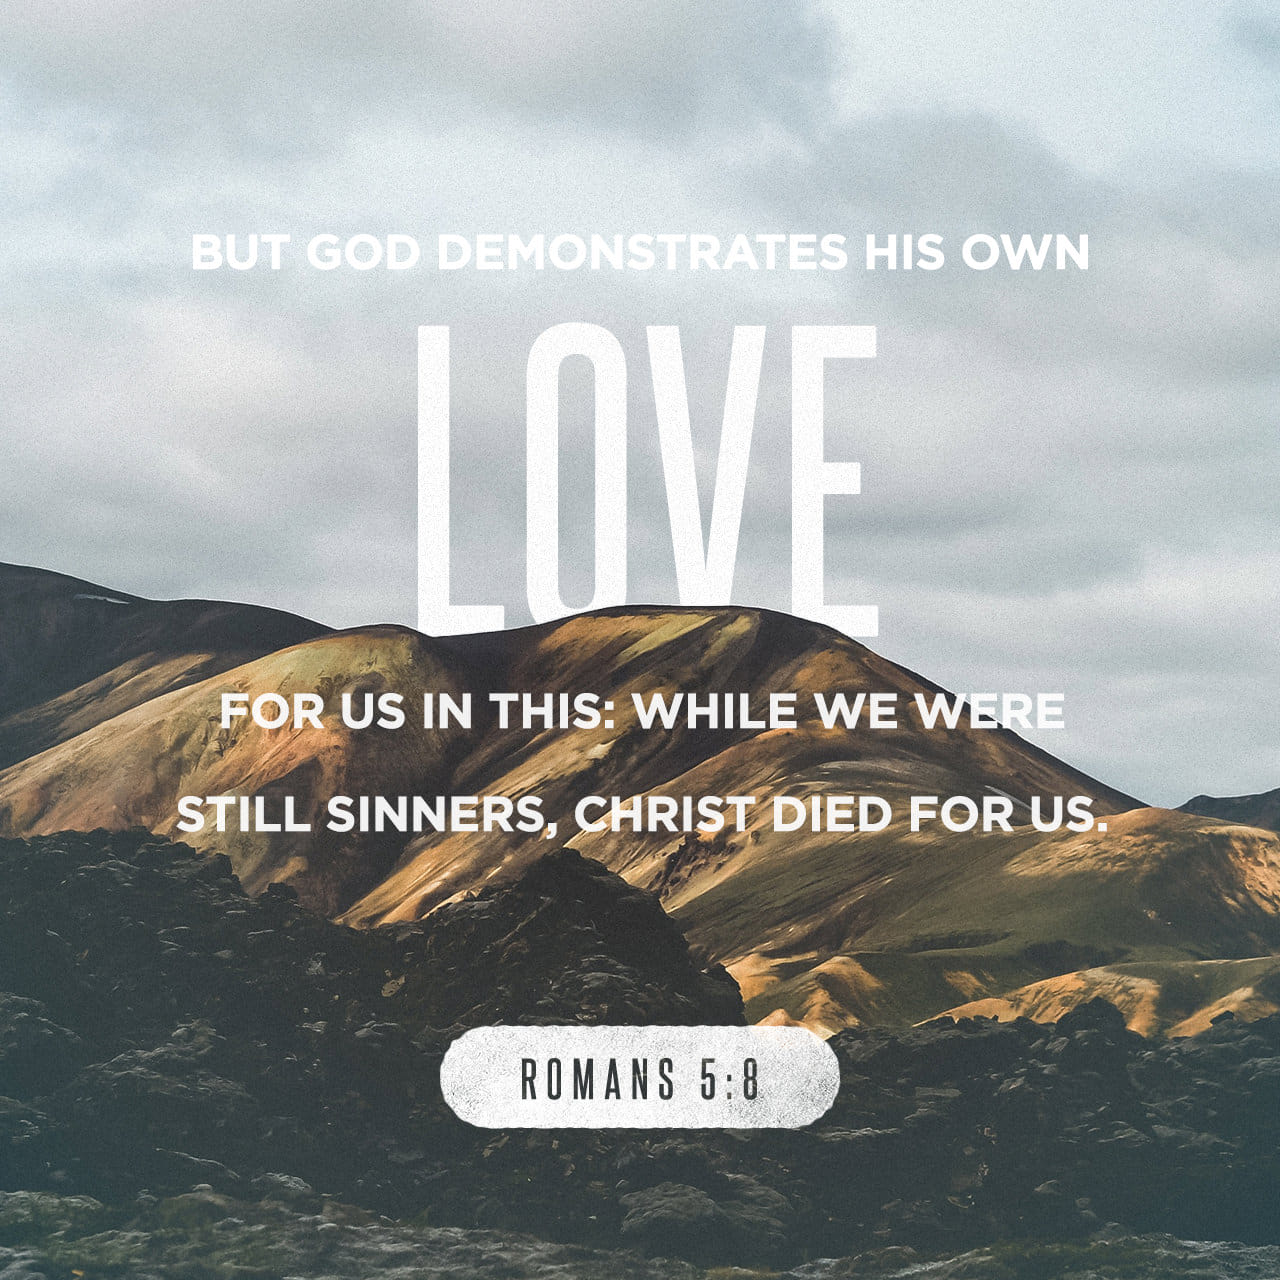 Bible Verse of the Day - day 173 - image 510 (Romans 5:8)